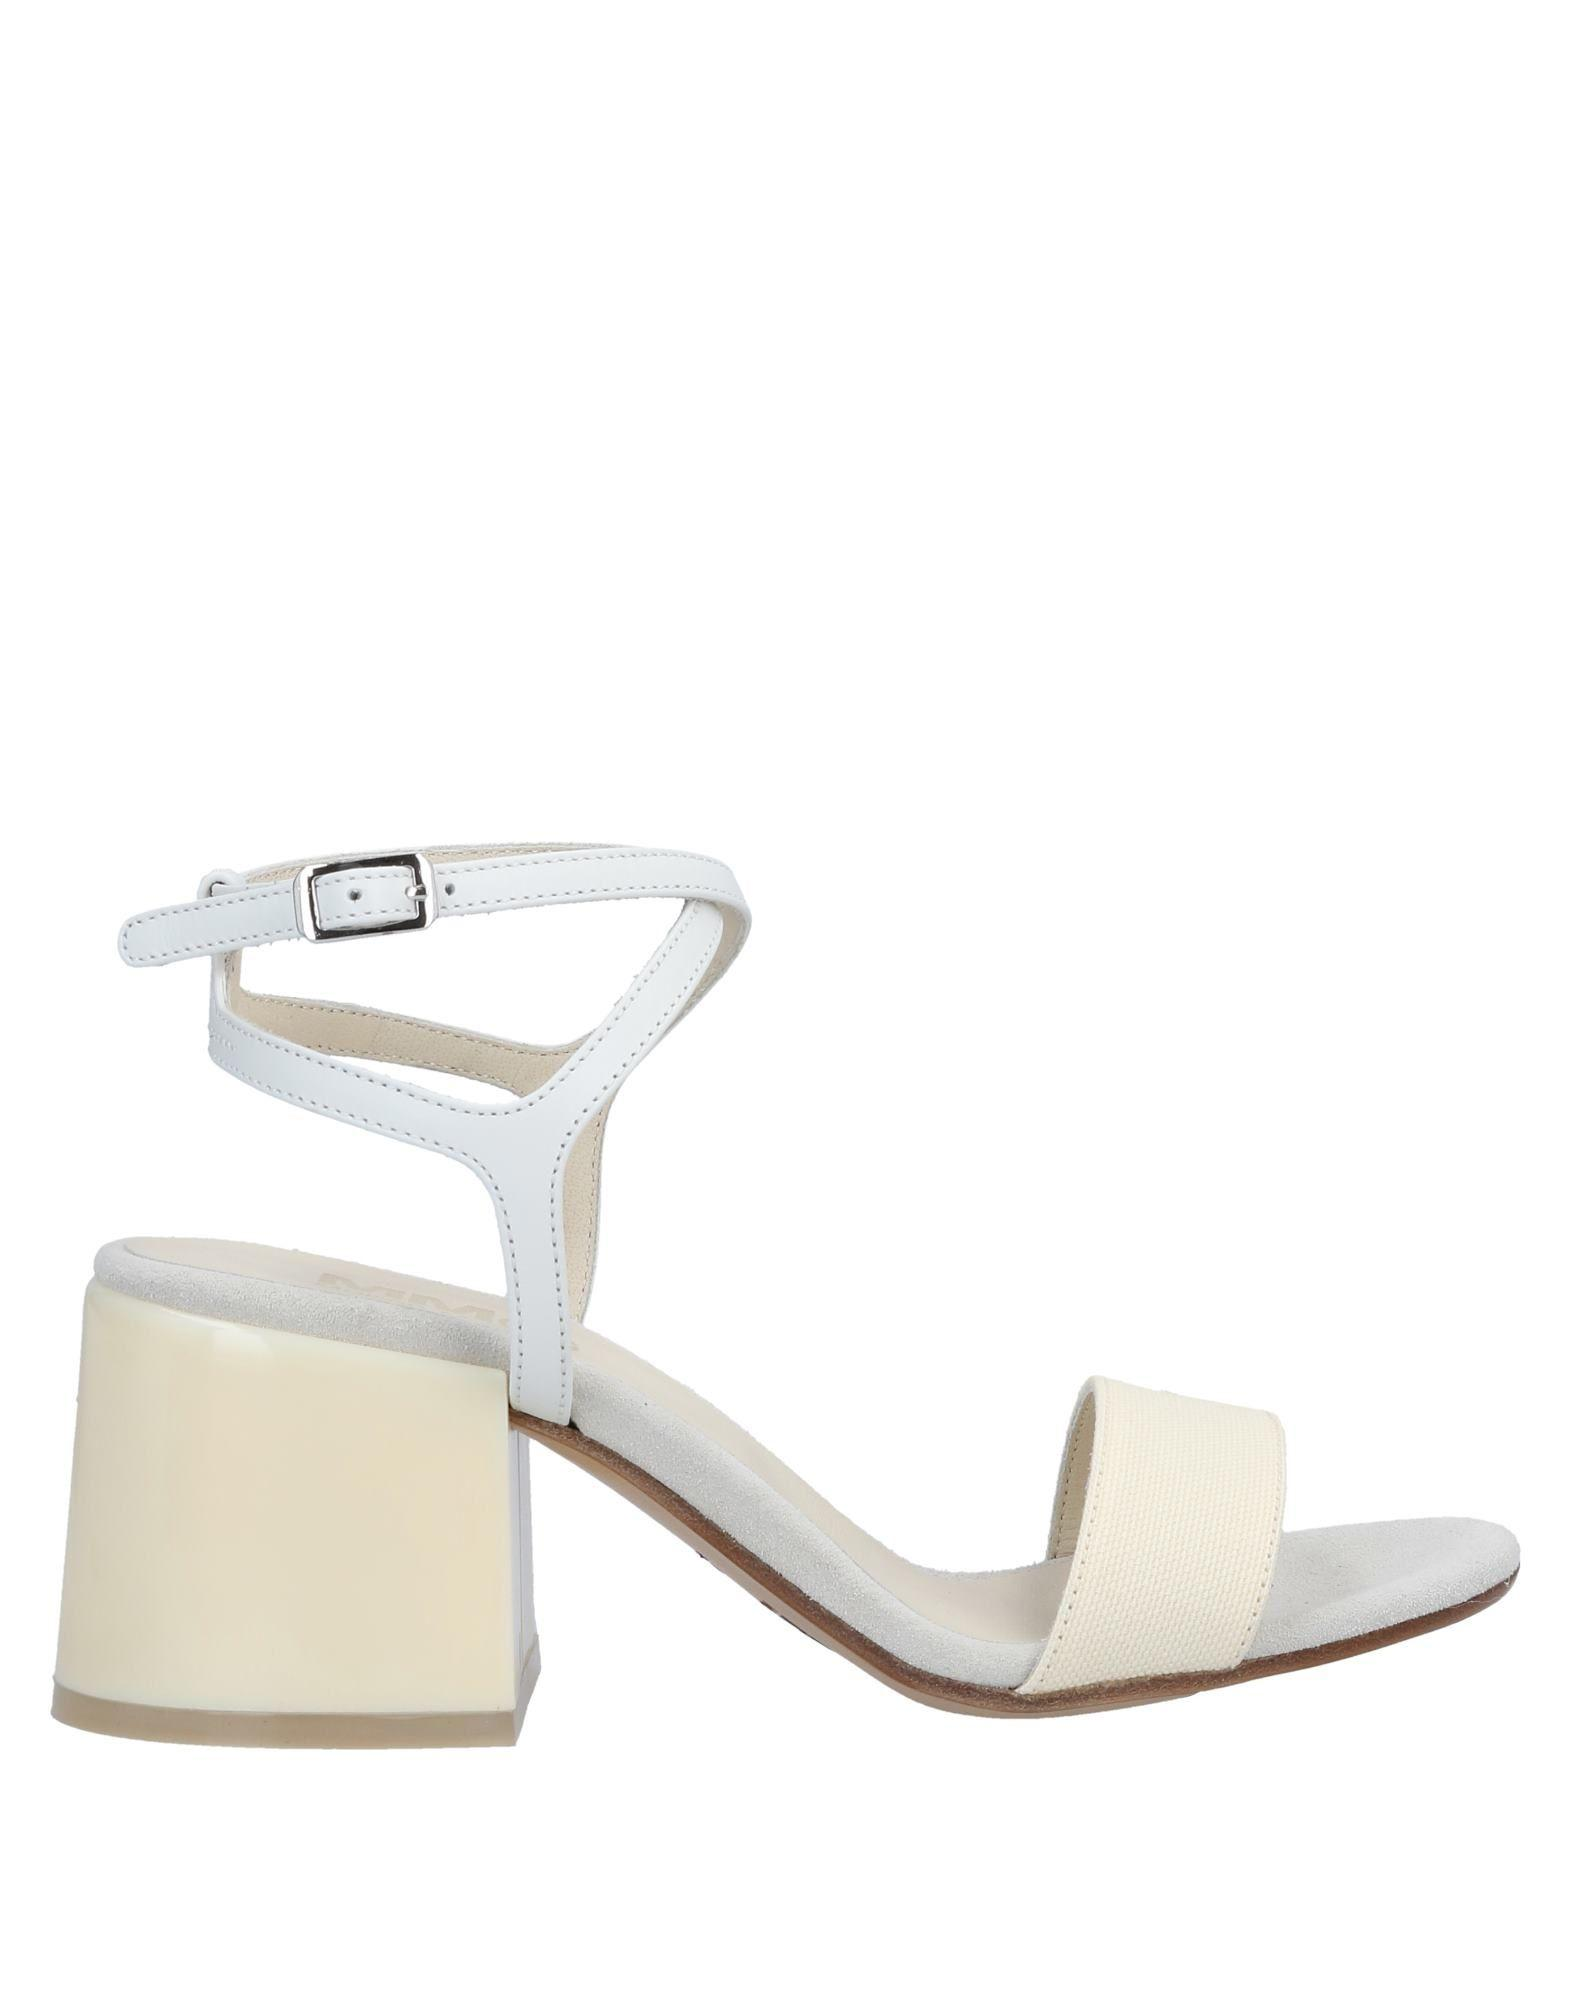 0a5638366e79 MM6 by Maison Martin Margiela Sandals in White - Lyst